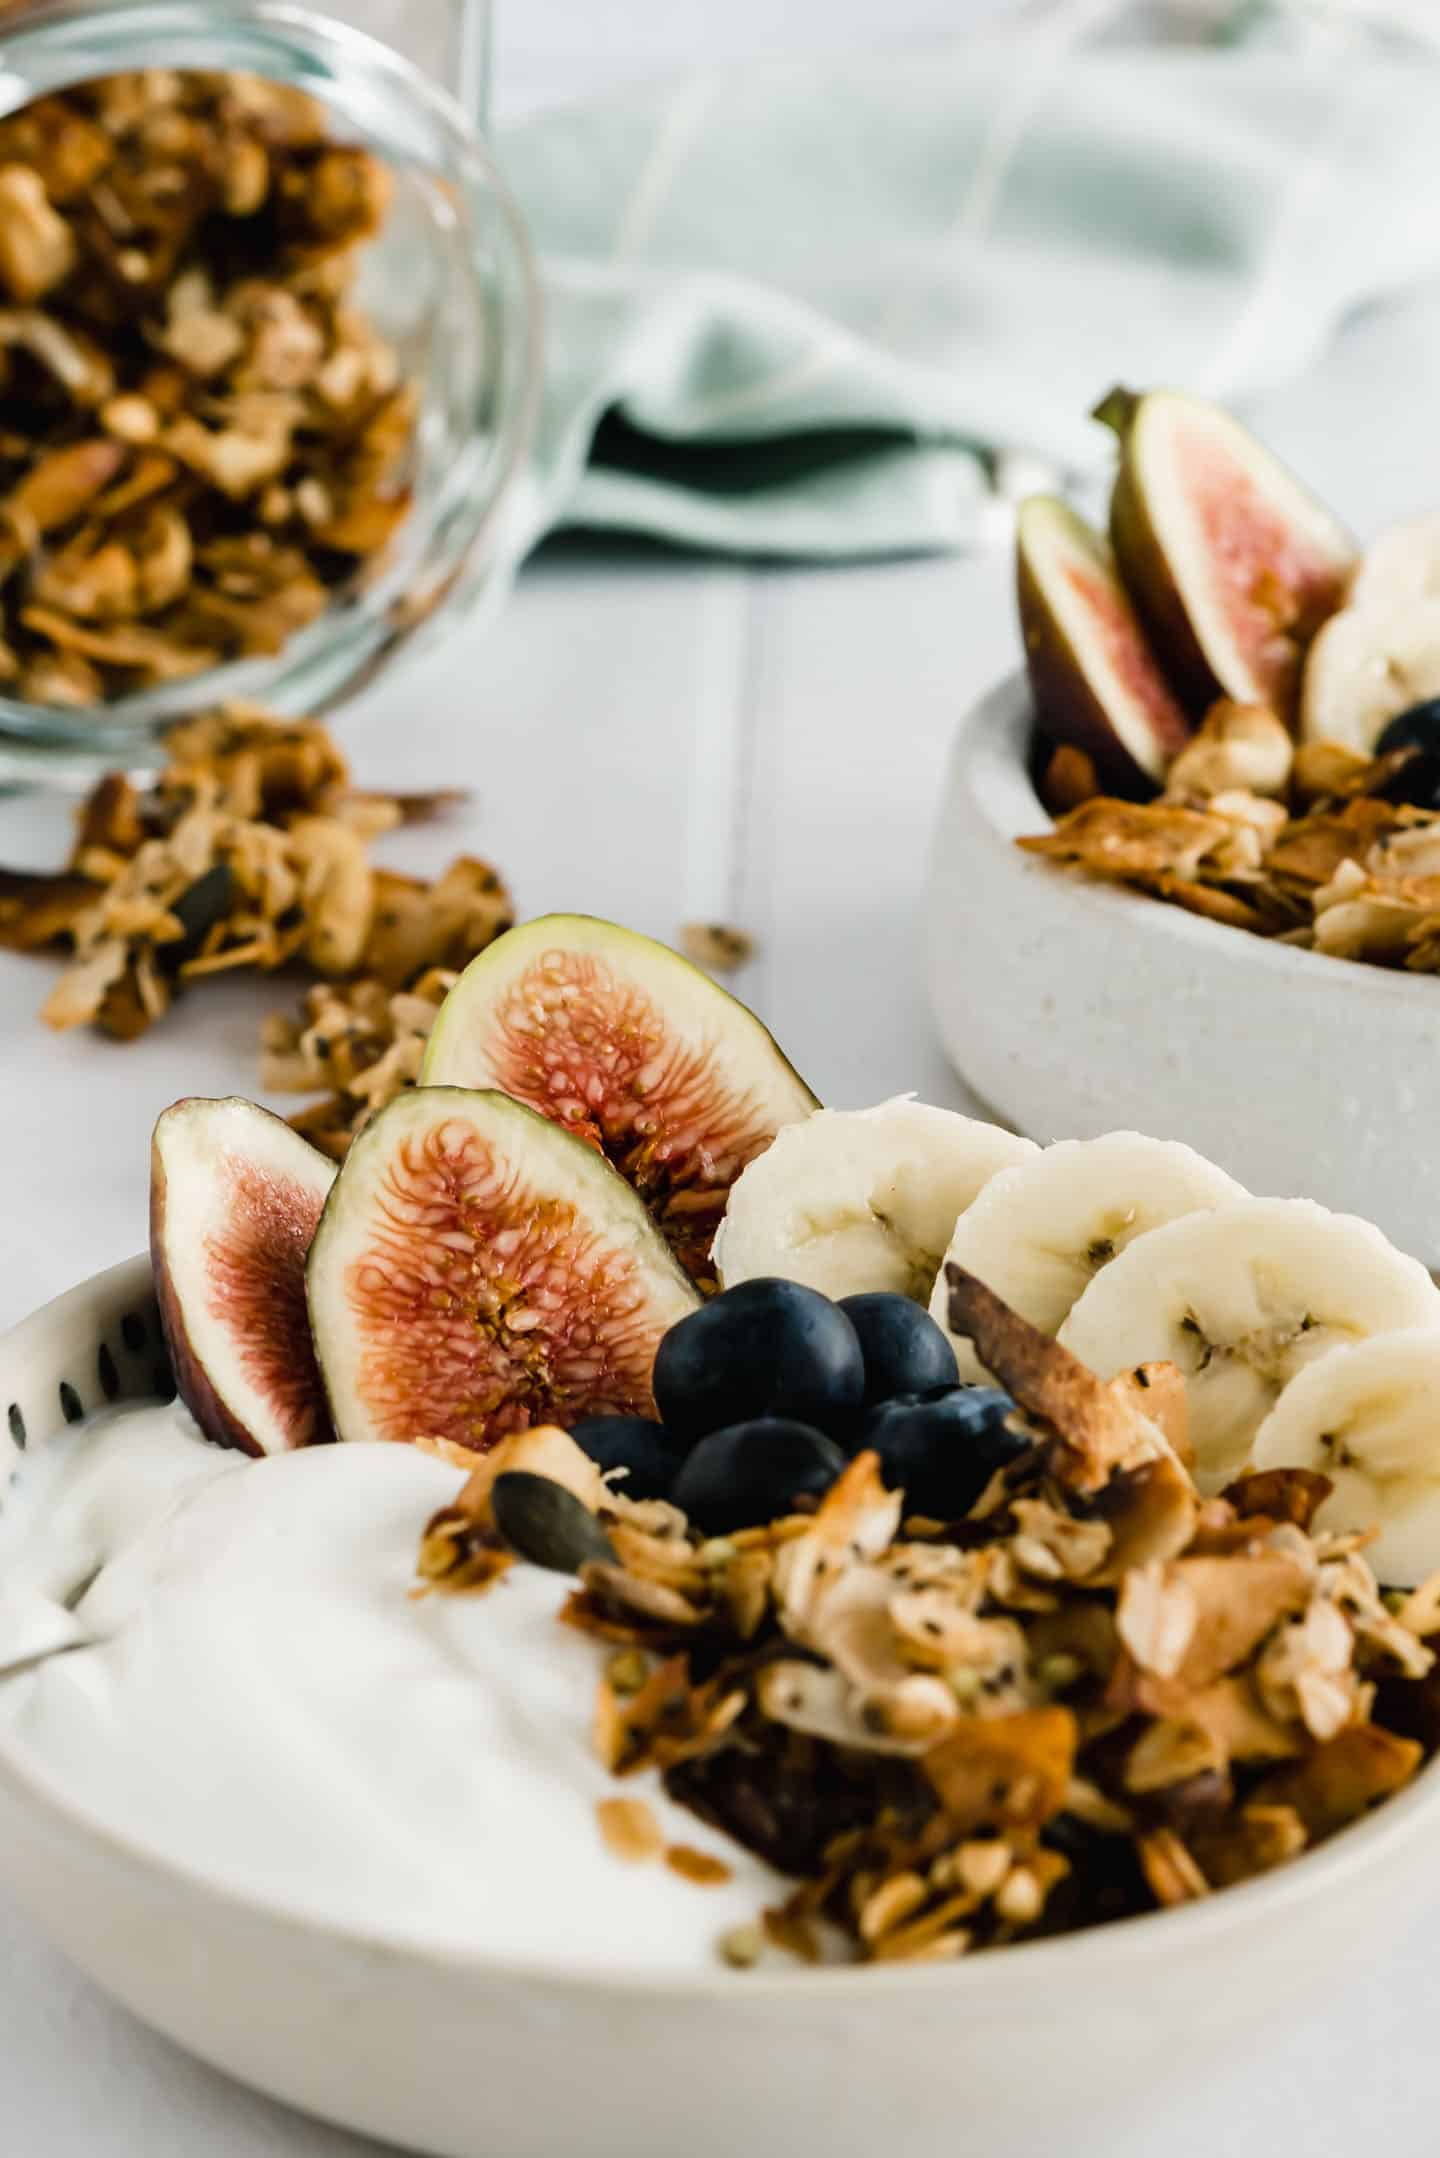 Homemade Granola Breakfast Bowl